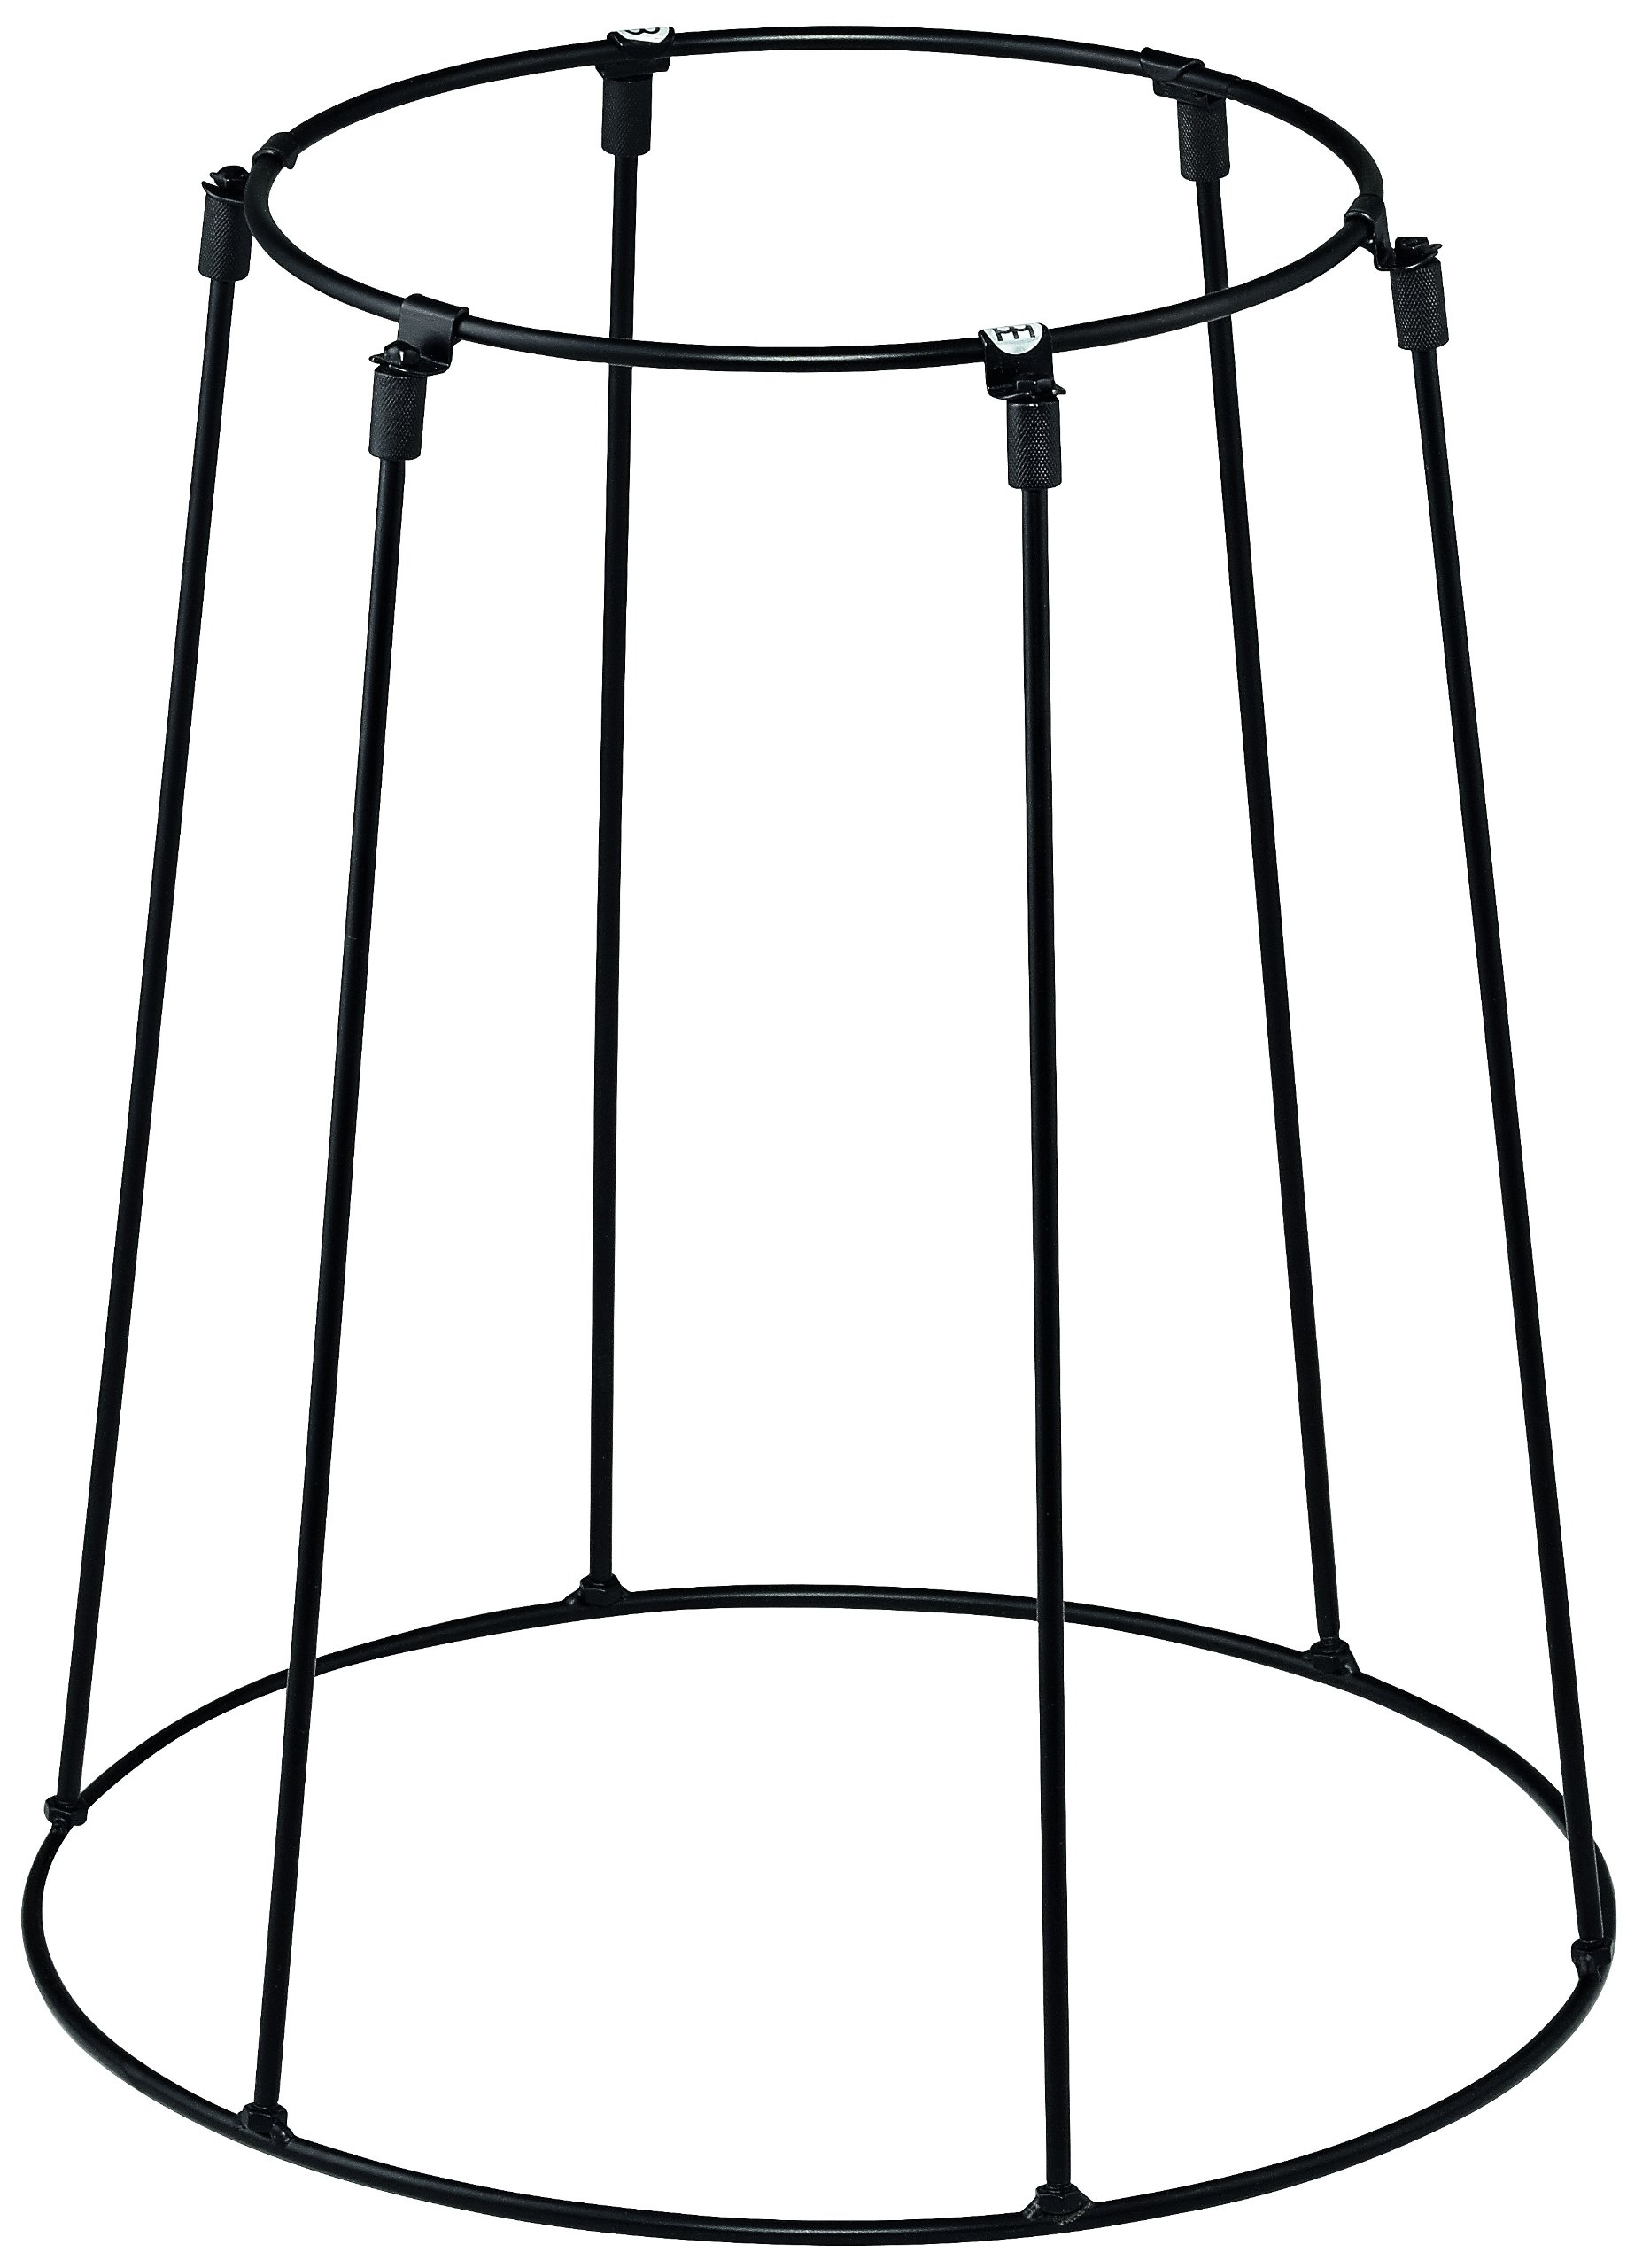 Meinl Percussion Travel Djembe Stand with Collapsible Design - NOT MADE IN CHINA - Perfect for Drum Circles, 2-YEAR WARRANTY (STDJST-BK)